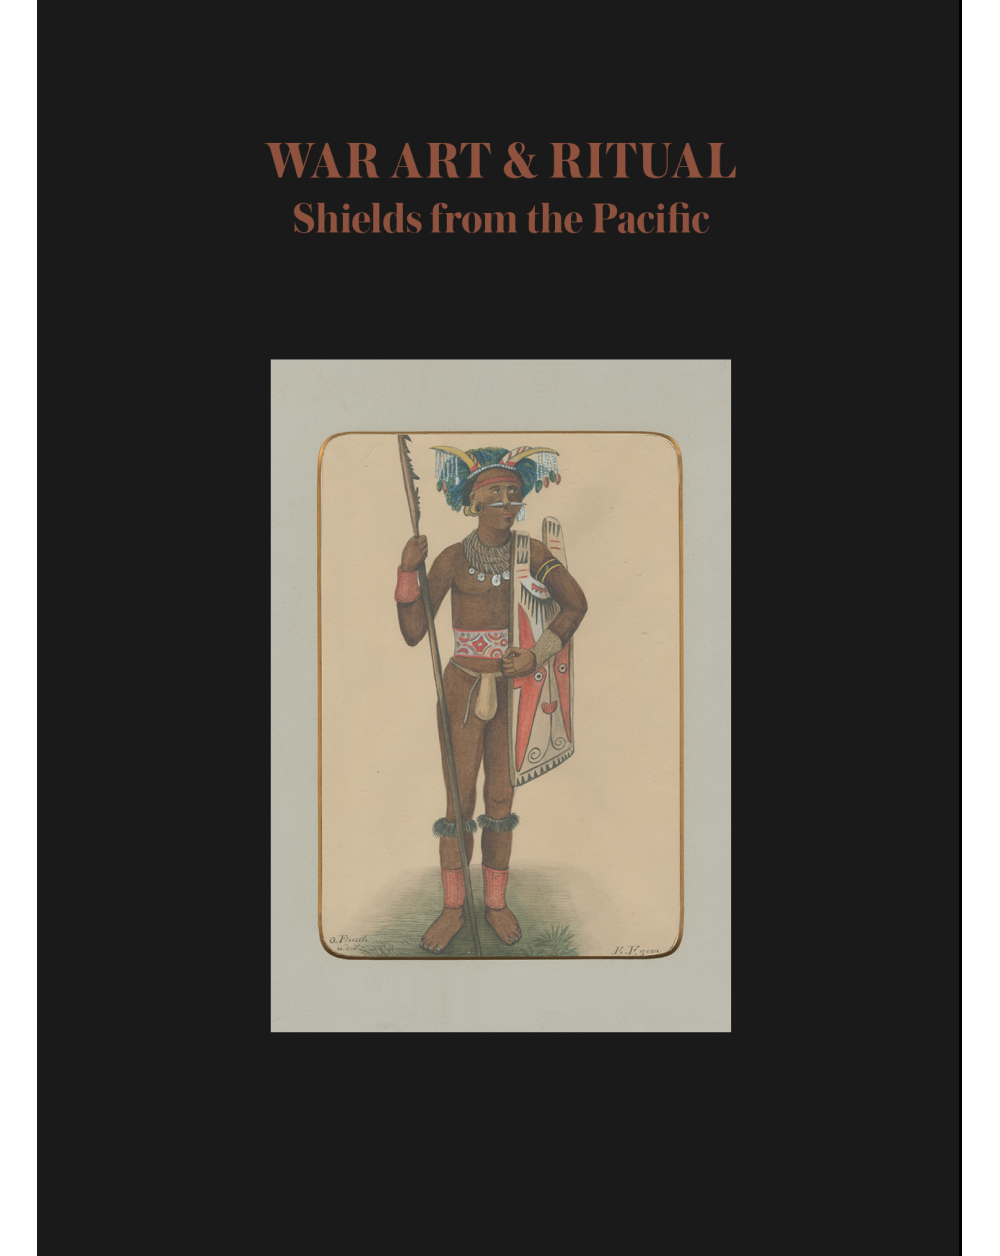 War-Art-and-Ritual-Shields-from-the-Pacific-1000x1256.png